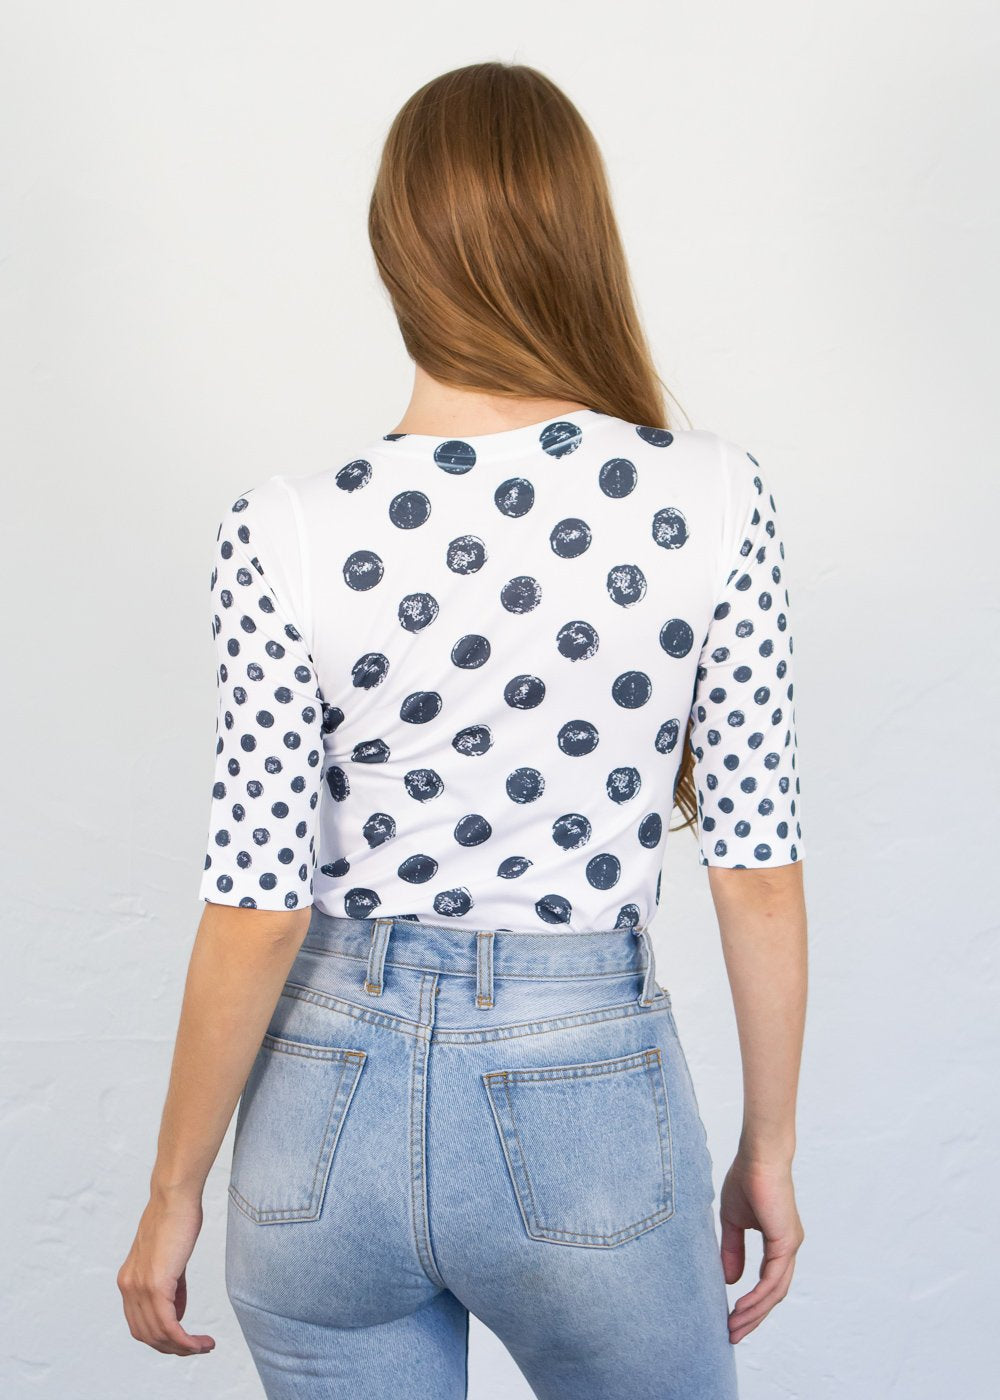 Grunge Polka Dot Elbow Sleeve Top